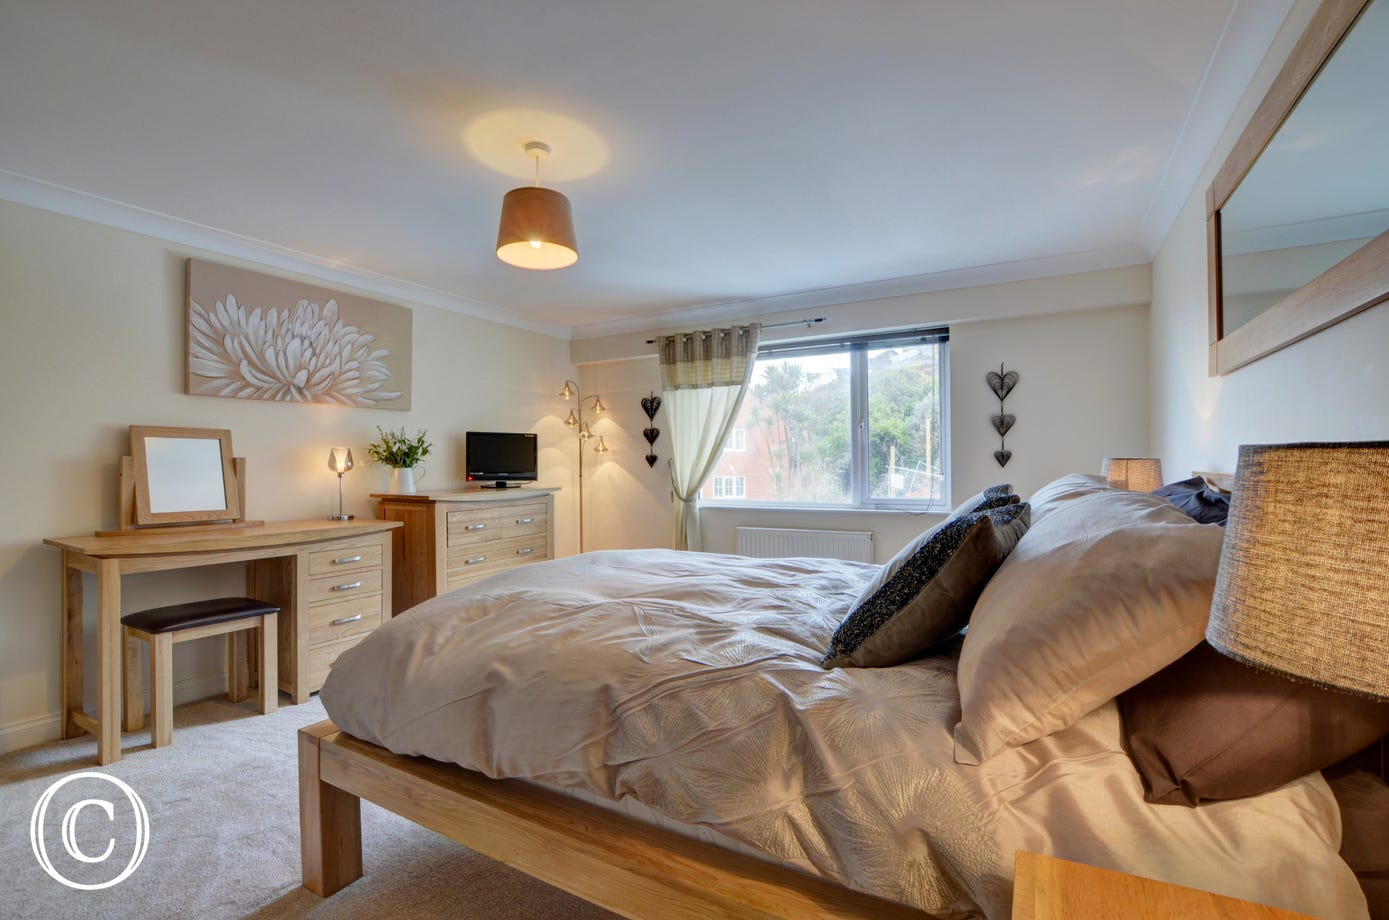 The stylish master bedroom with double bed and TV